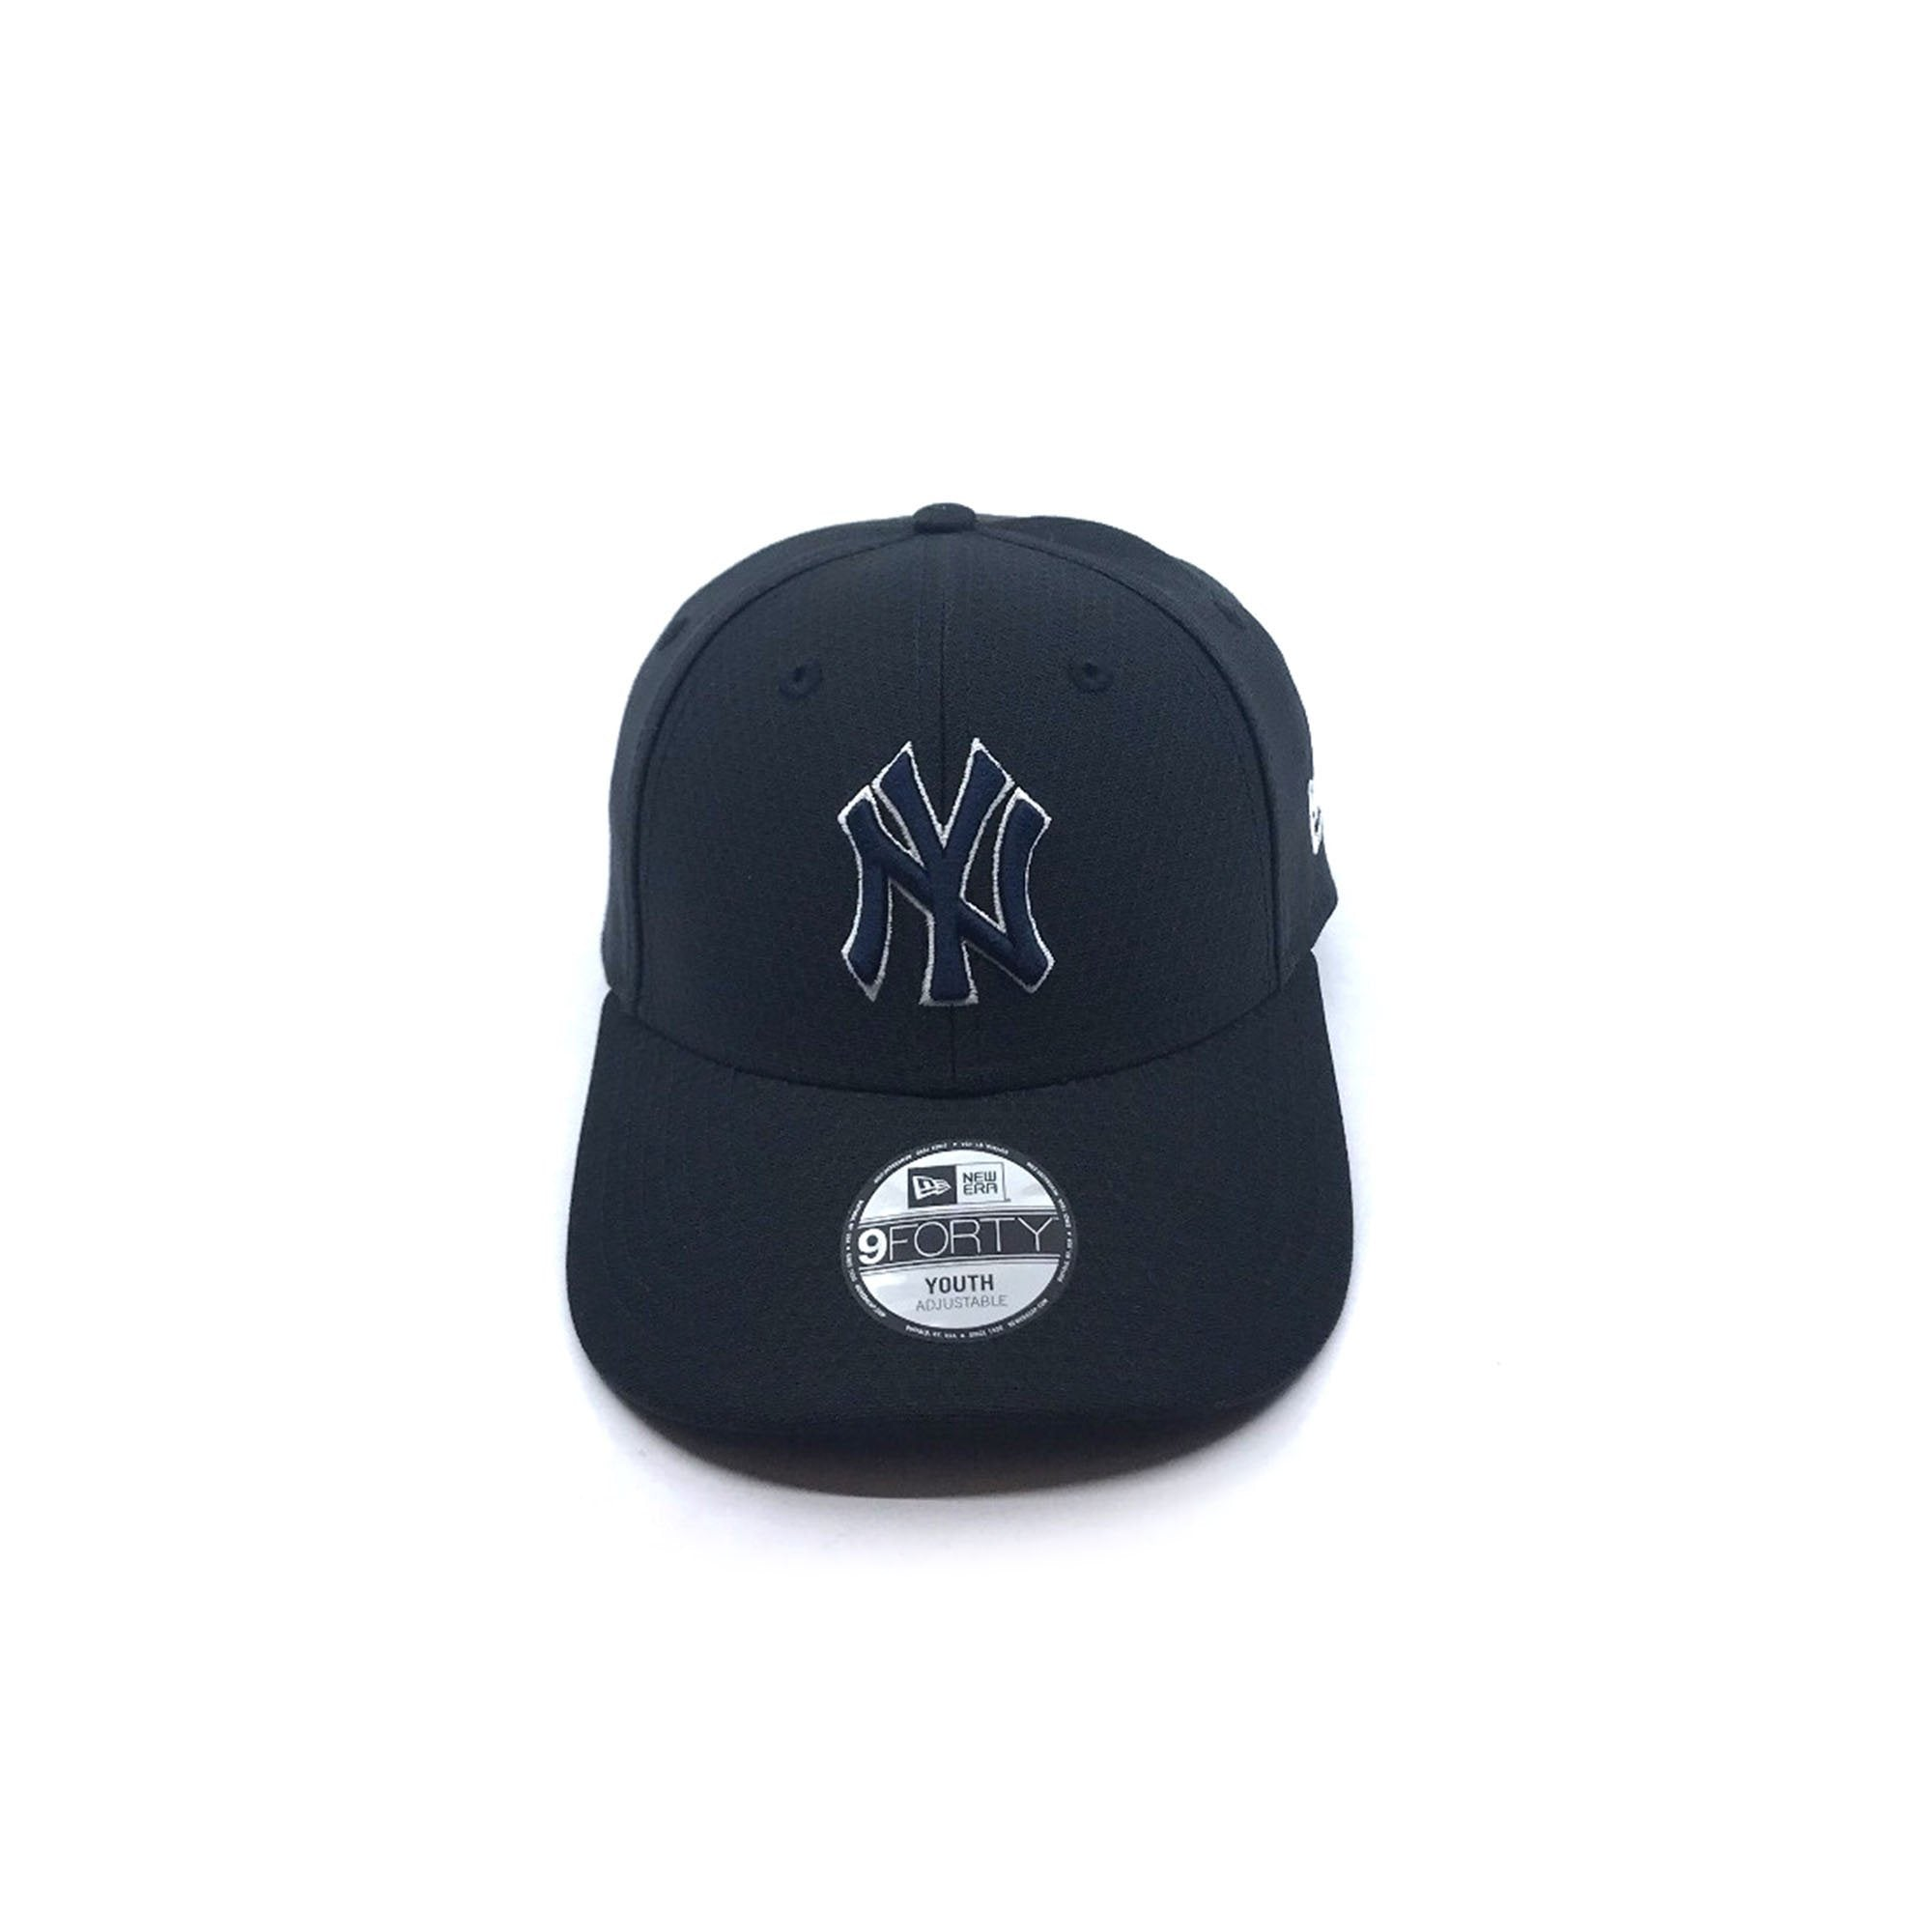 New Era Youth 9FORTY Snapback - New York Yankees - Black Hex SP-Headwear-Caps New Era